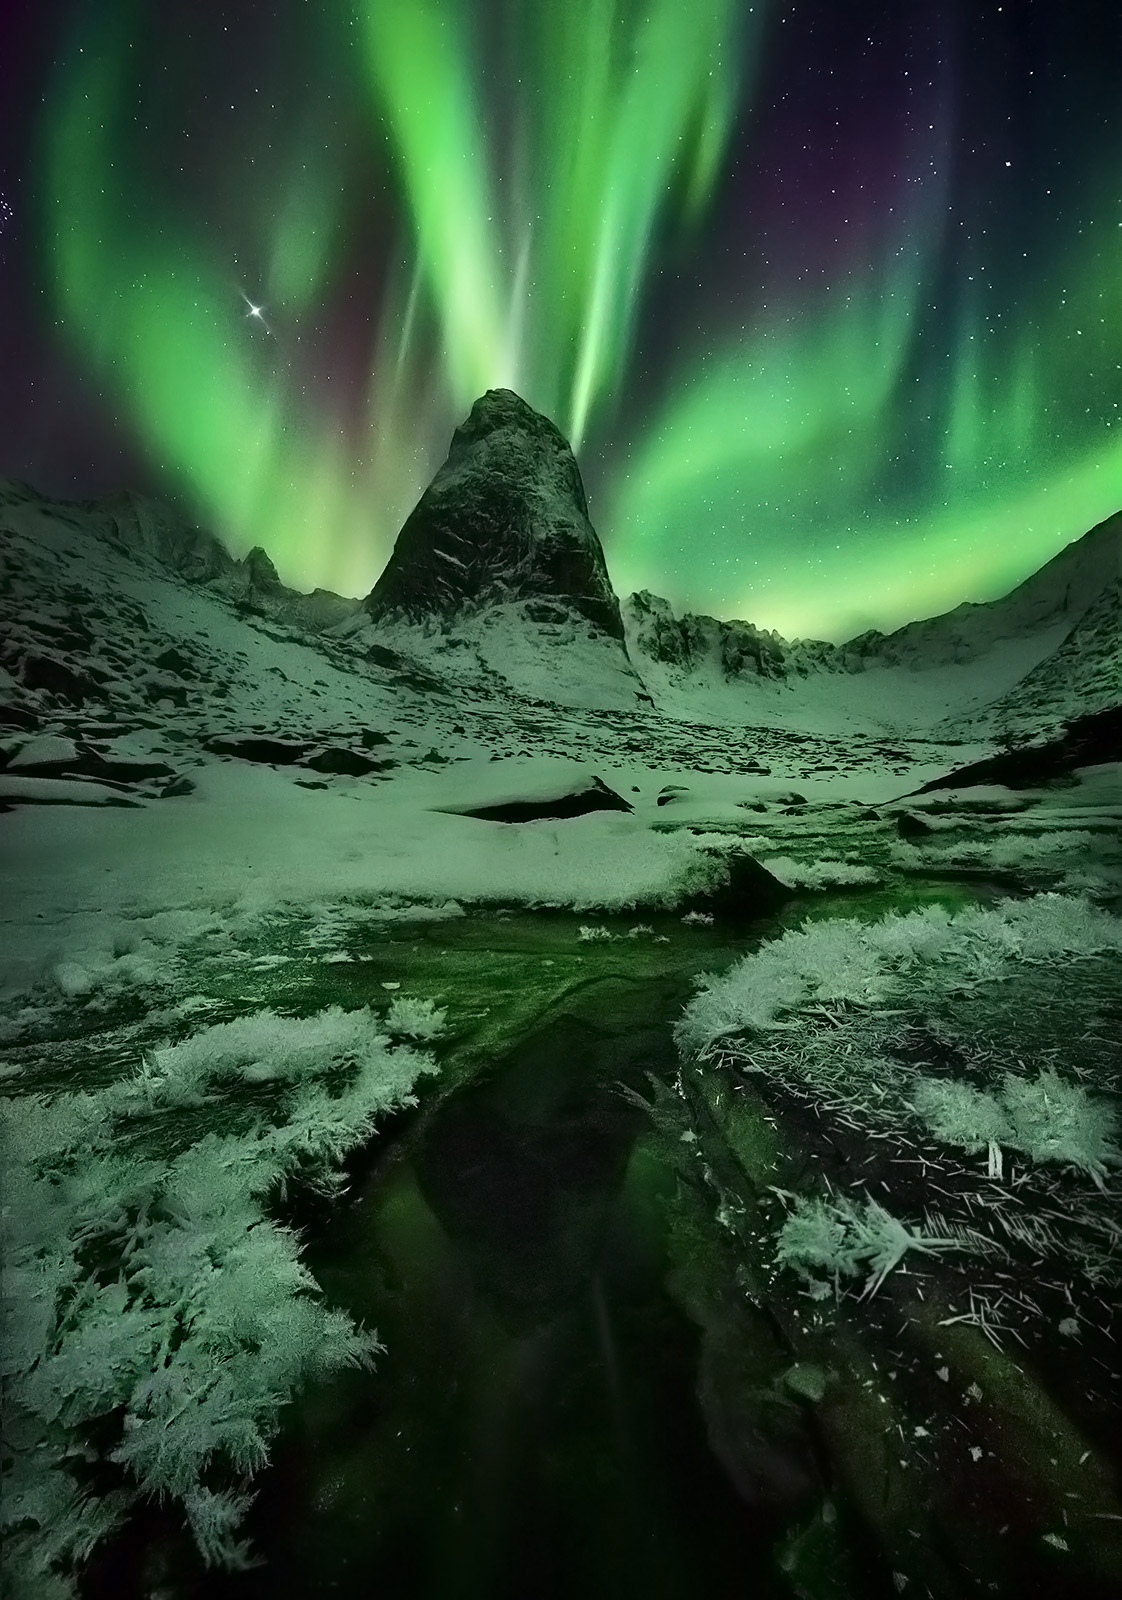 An amazing show of Aurora over peaks in the Yukon's Ogilvie Range. An extreme-high ISO was used combined with depth of field...